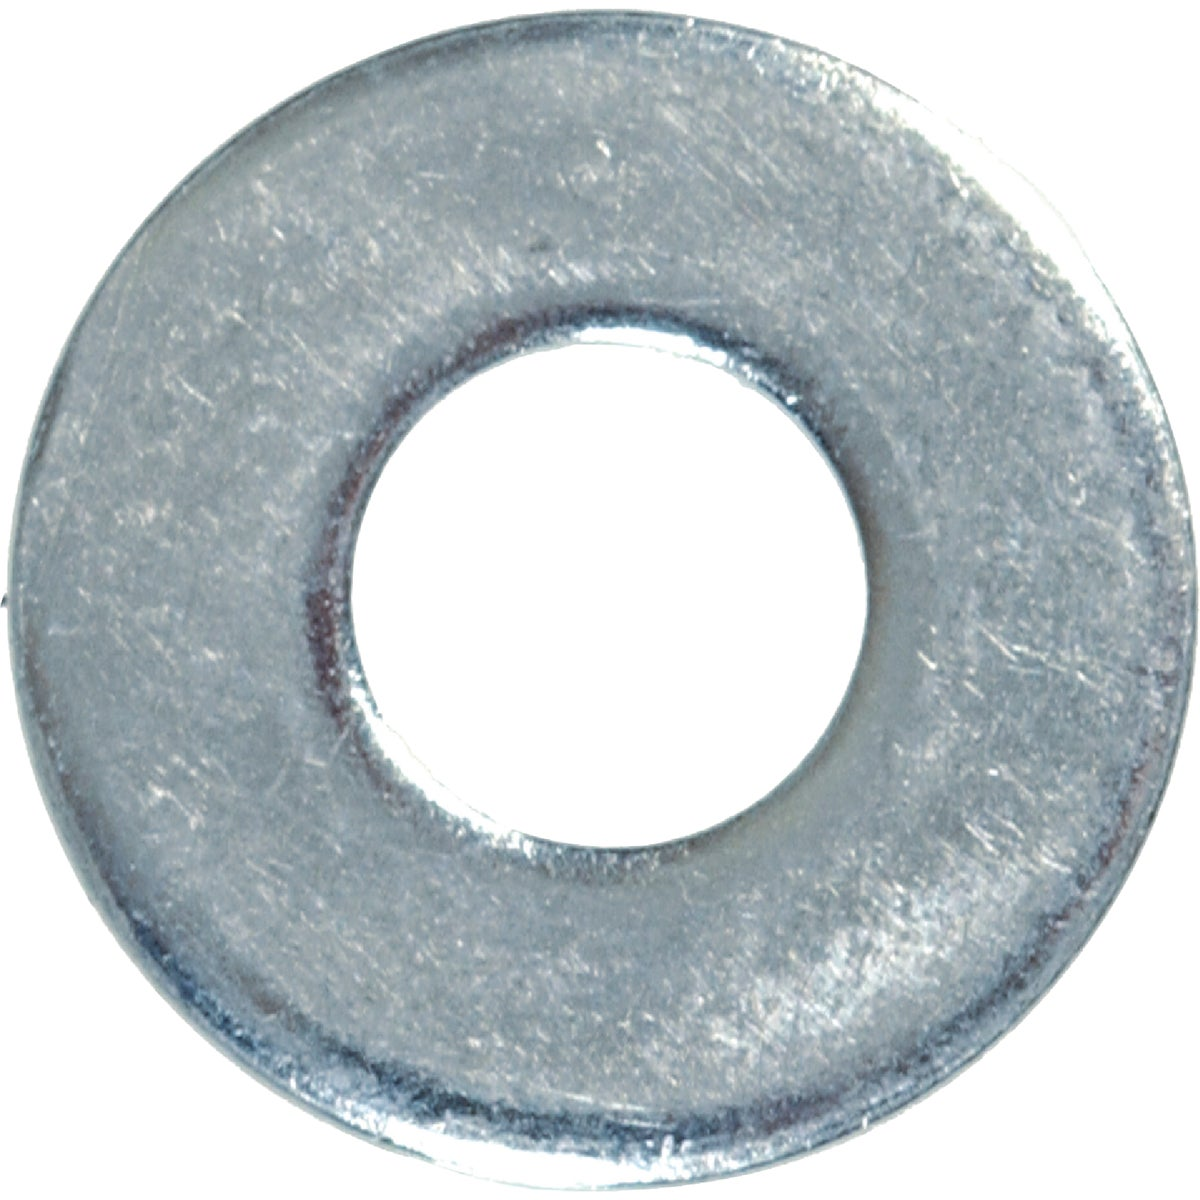 #8 STEEL FLAT WASHER